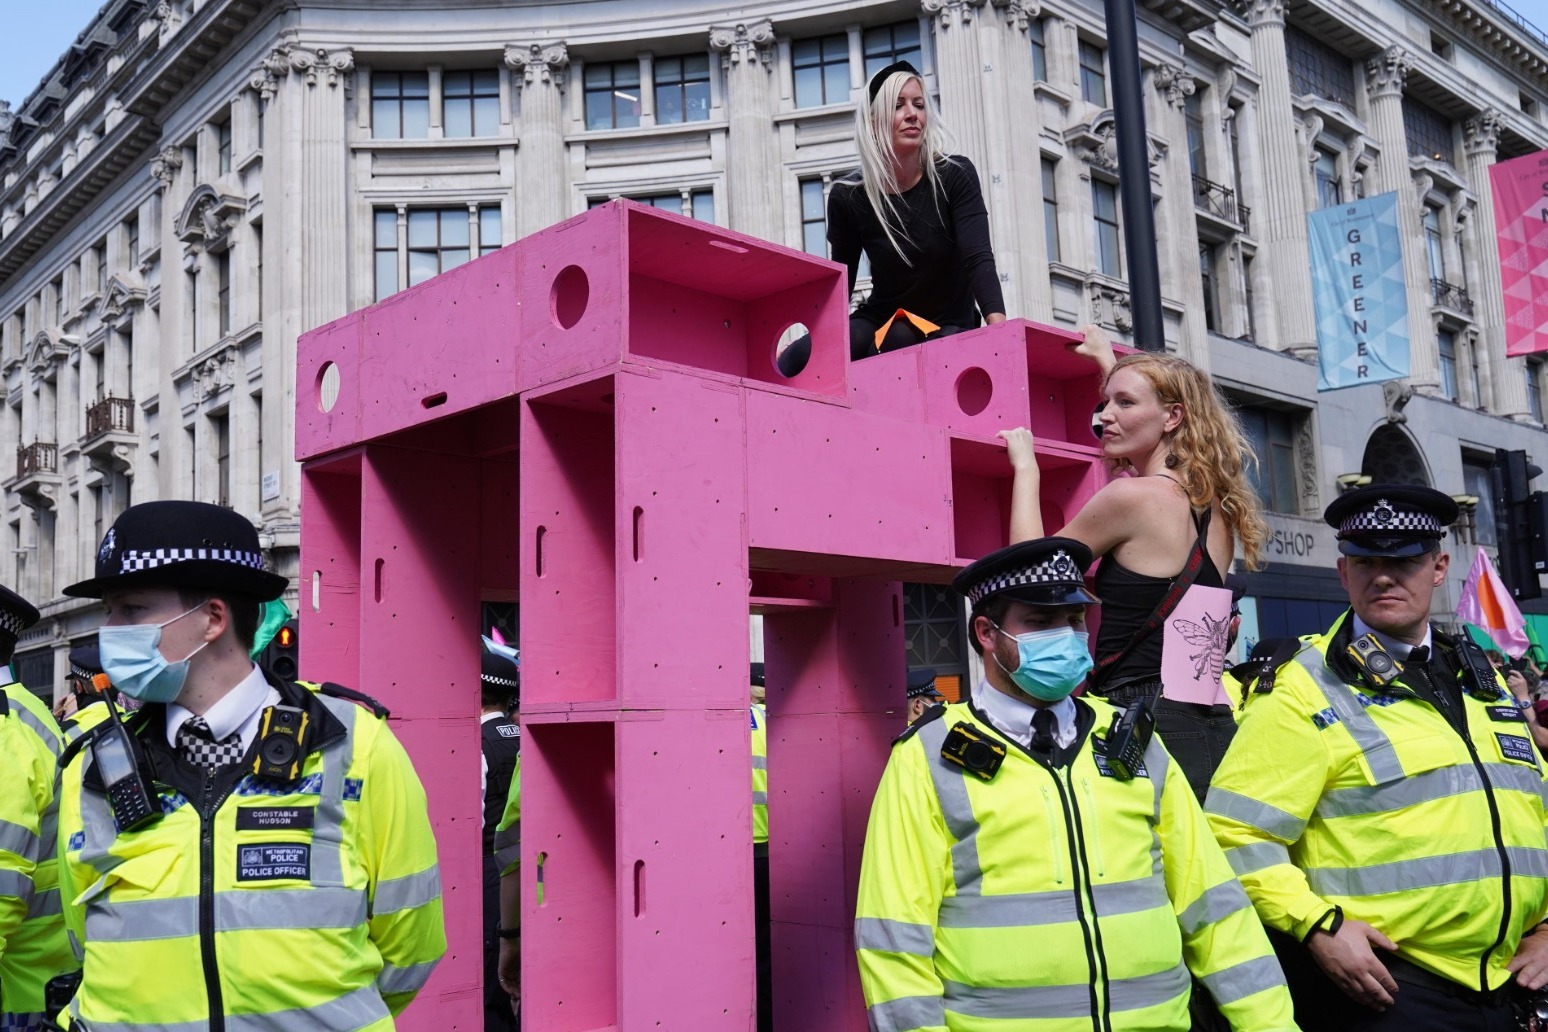 Number of people arrested at XR protests nears 200 as Oxford Circus targeted